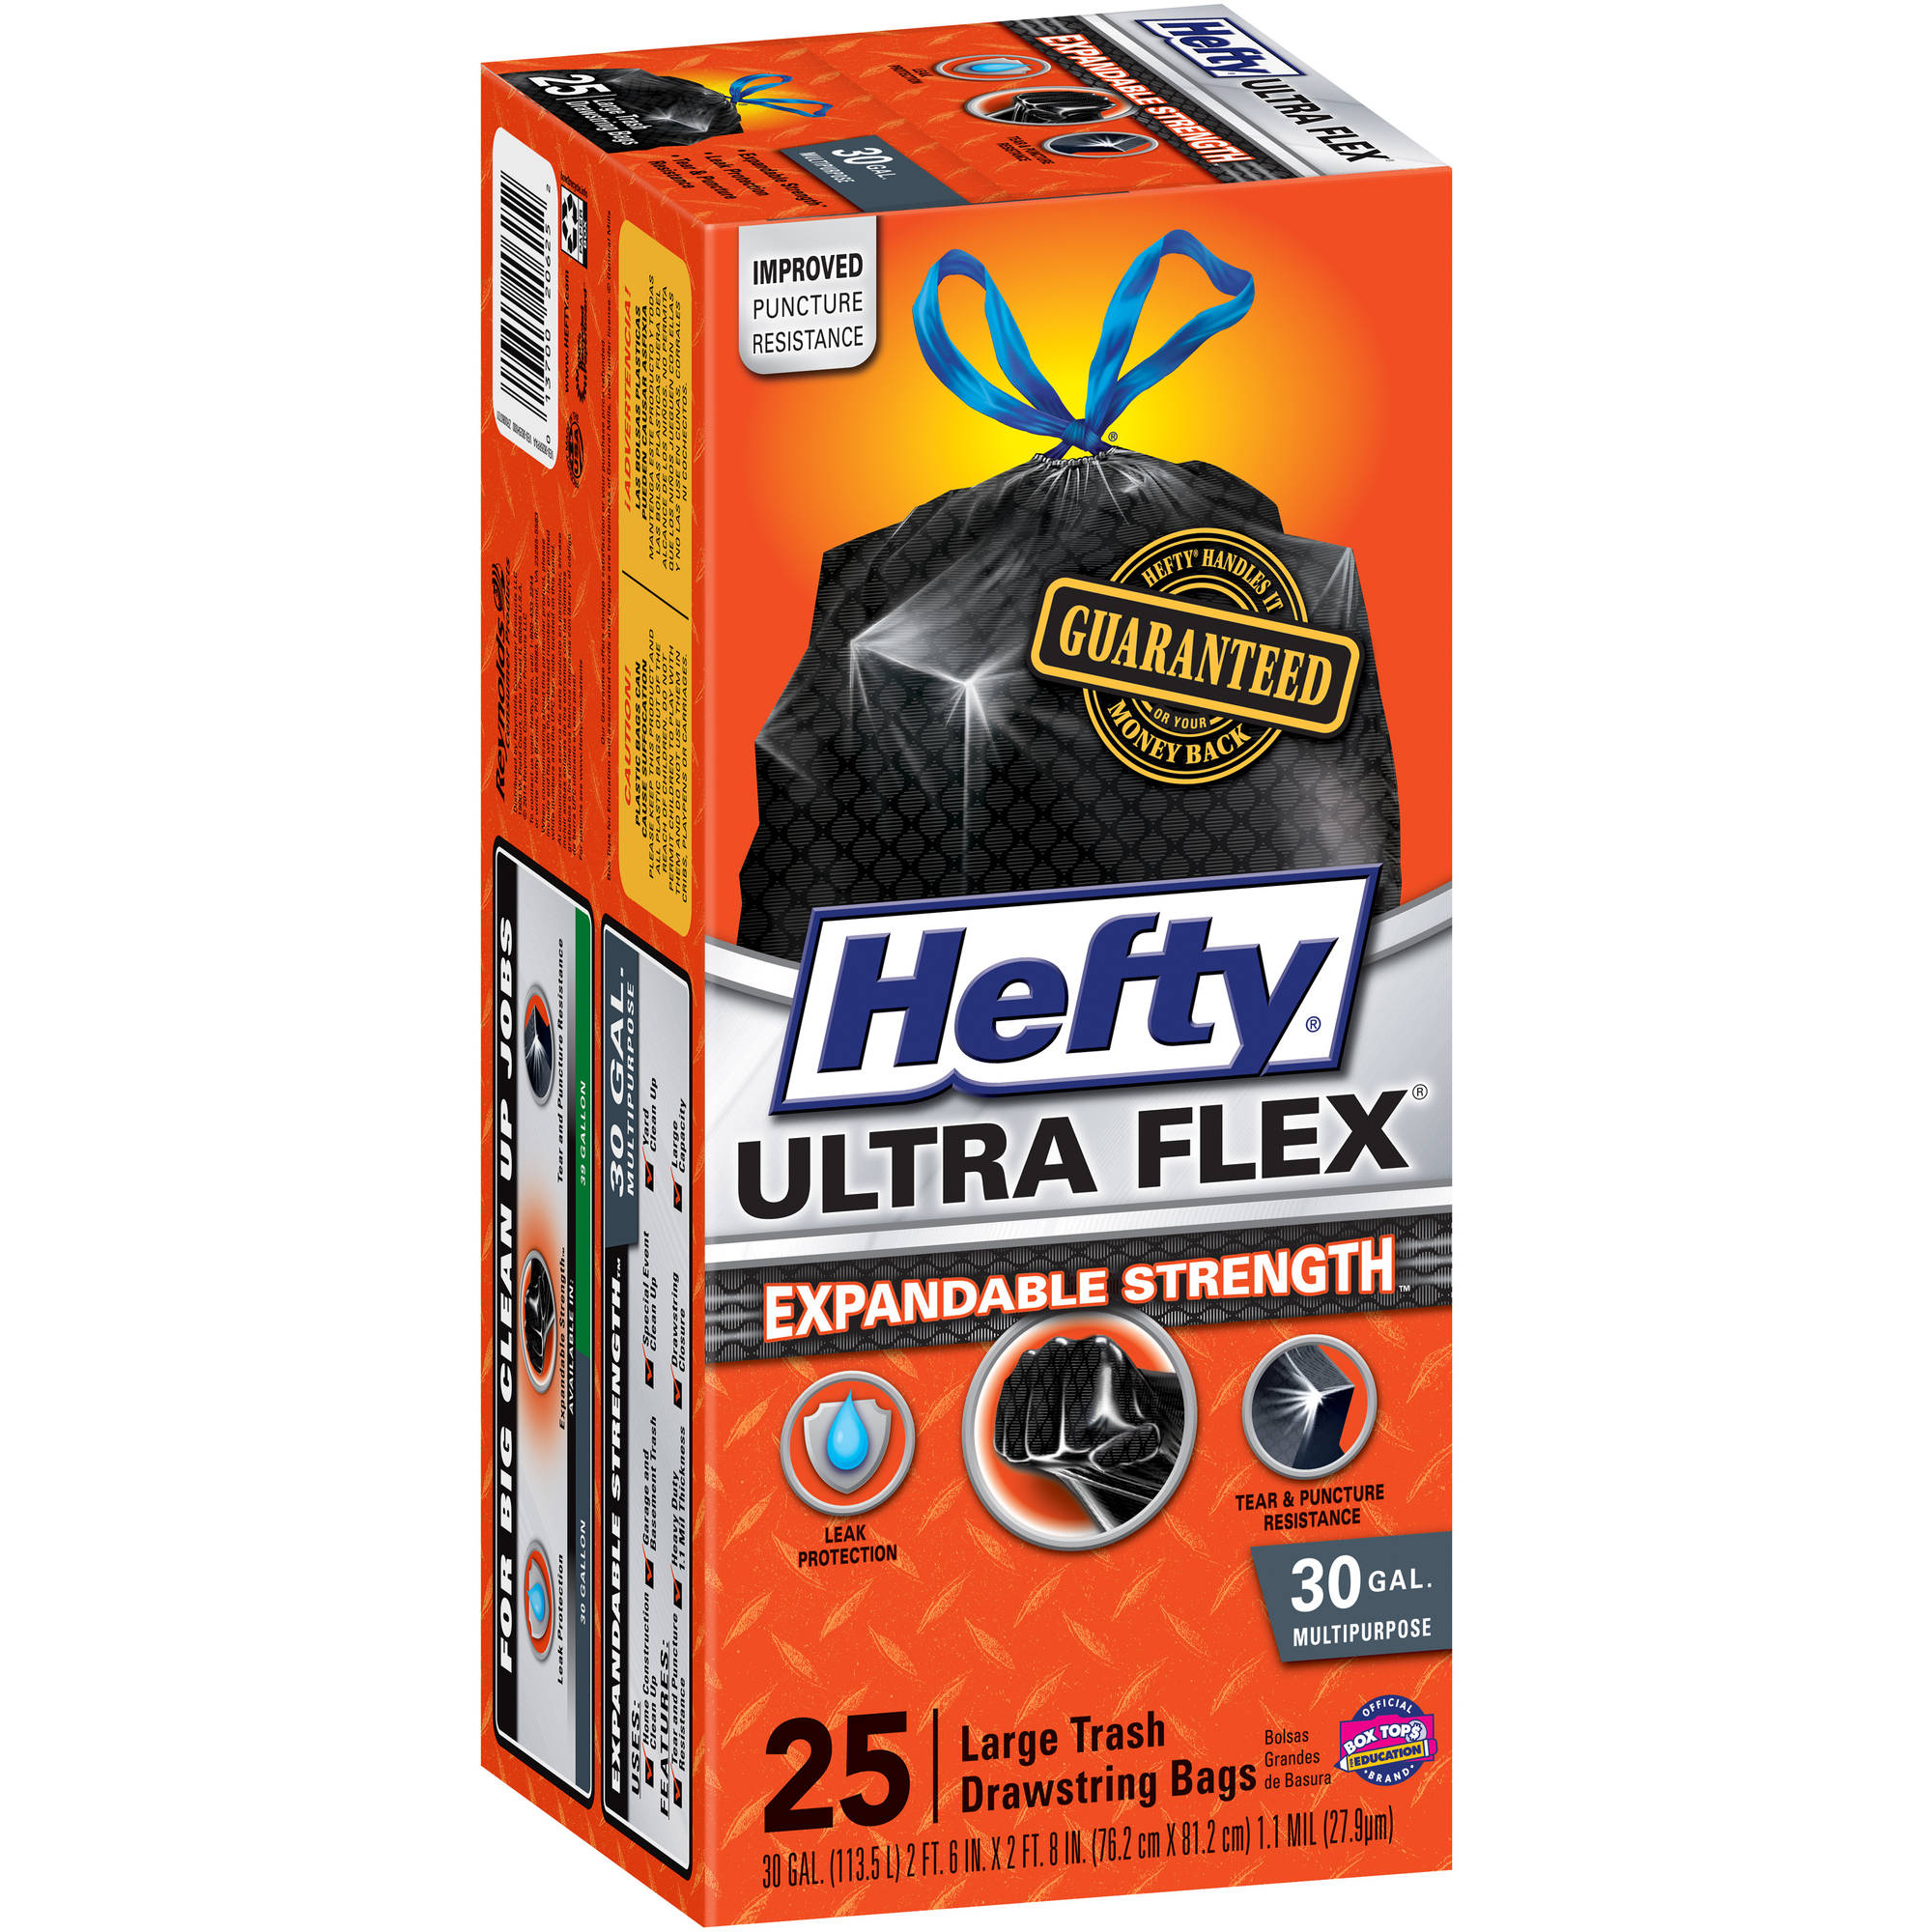 Hefty Ultra Flex Large Drawstring 30 Gallon Trash Bags, 25 ct